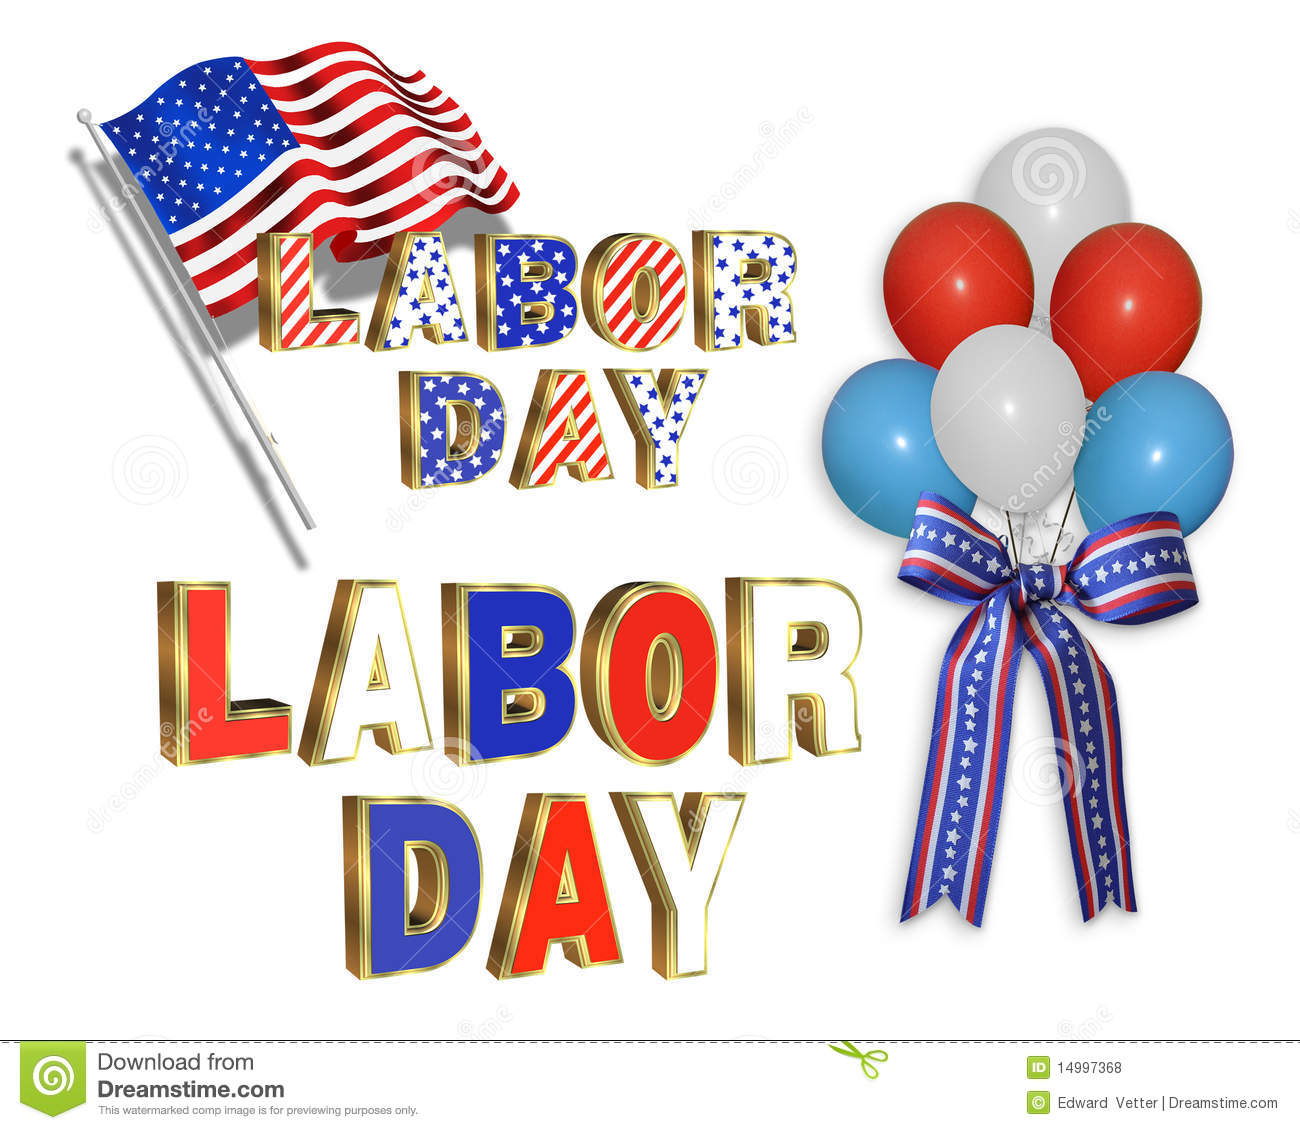 1000  images about LABOR DAY/VETERANu002-1000  images about LABOR DAY/VETERANu0026#39;S DAY on Pinterest | Labor day, Clip art free and Labor-13